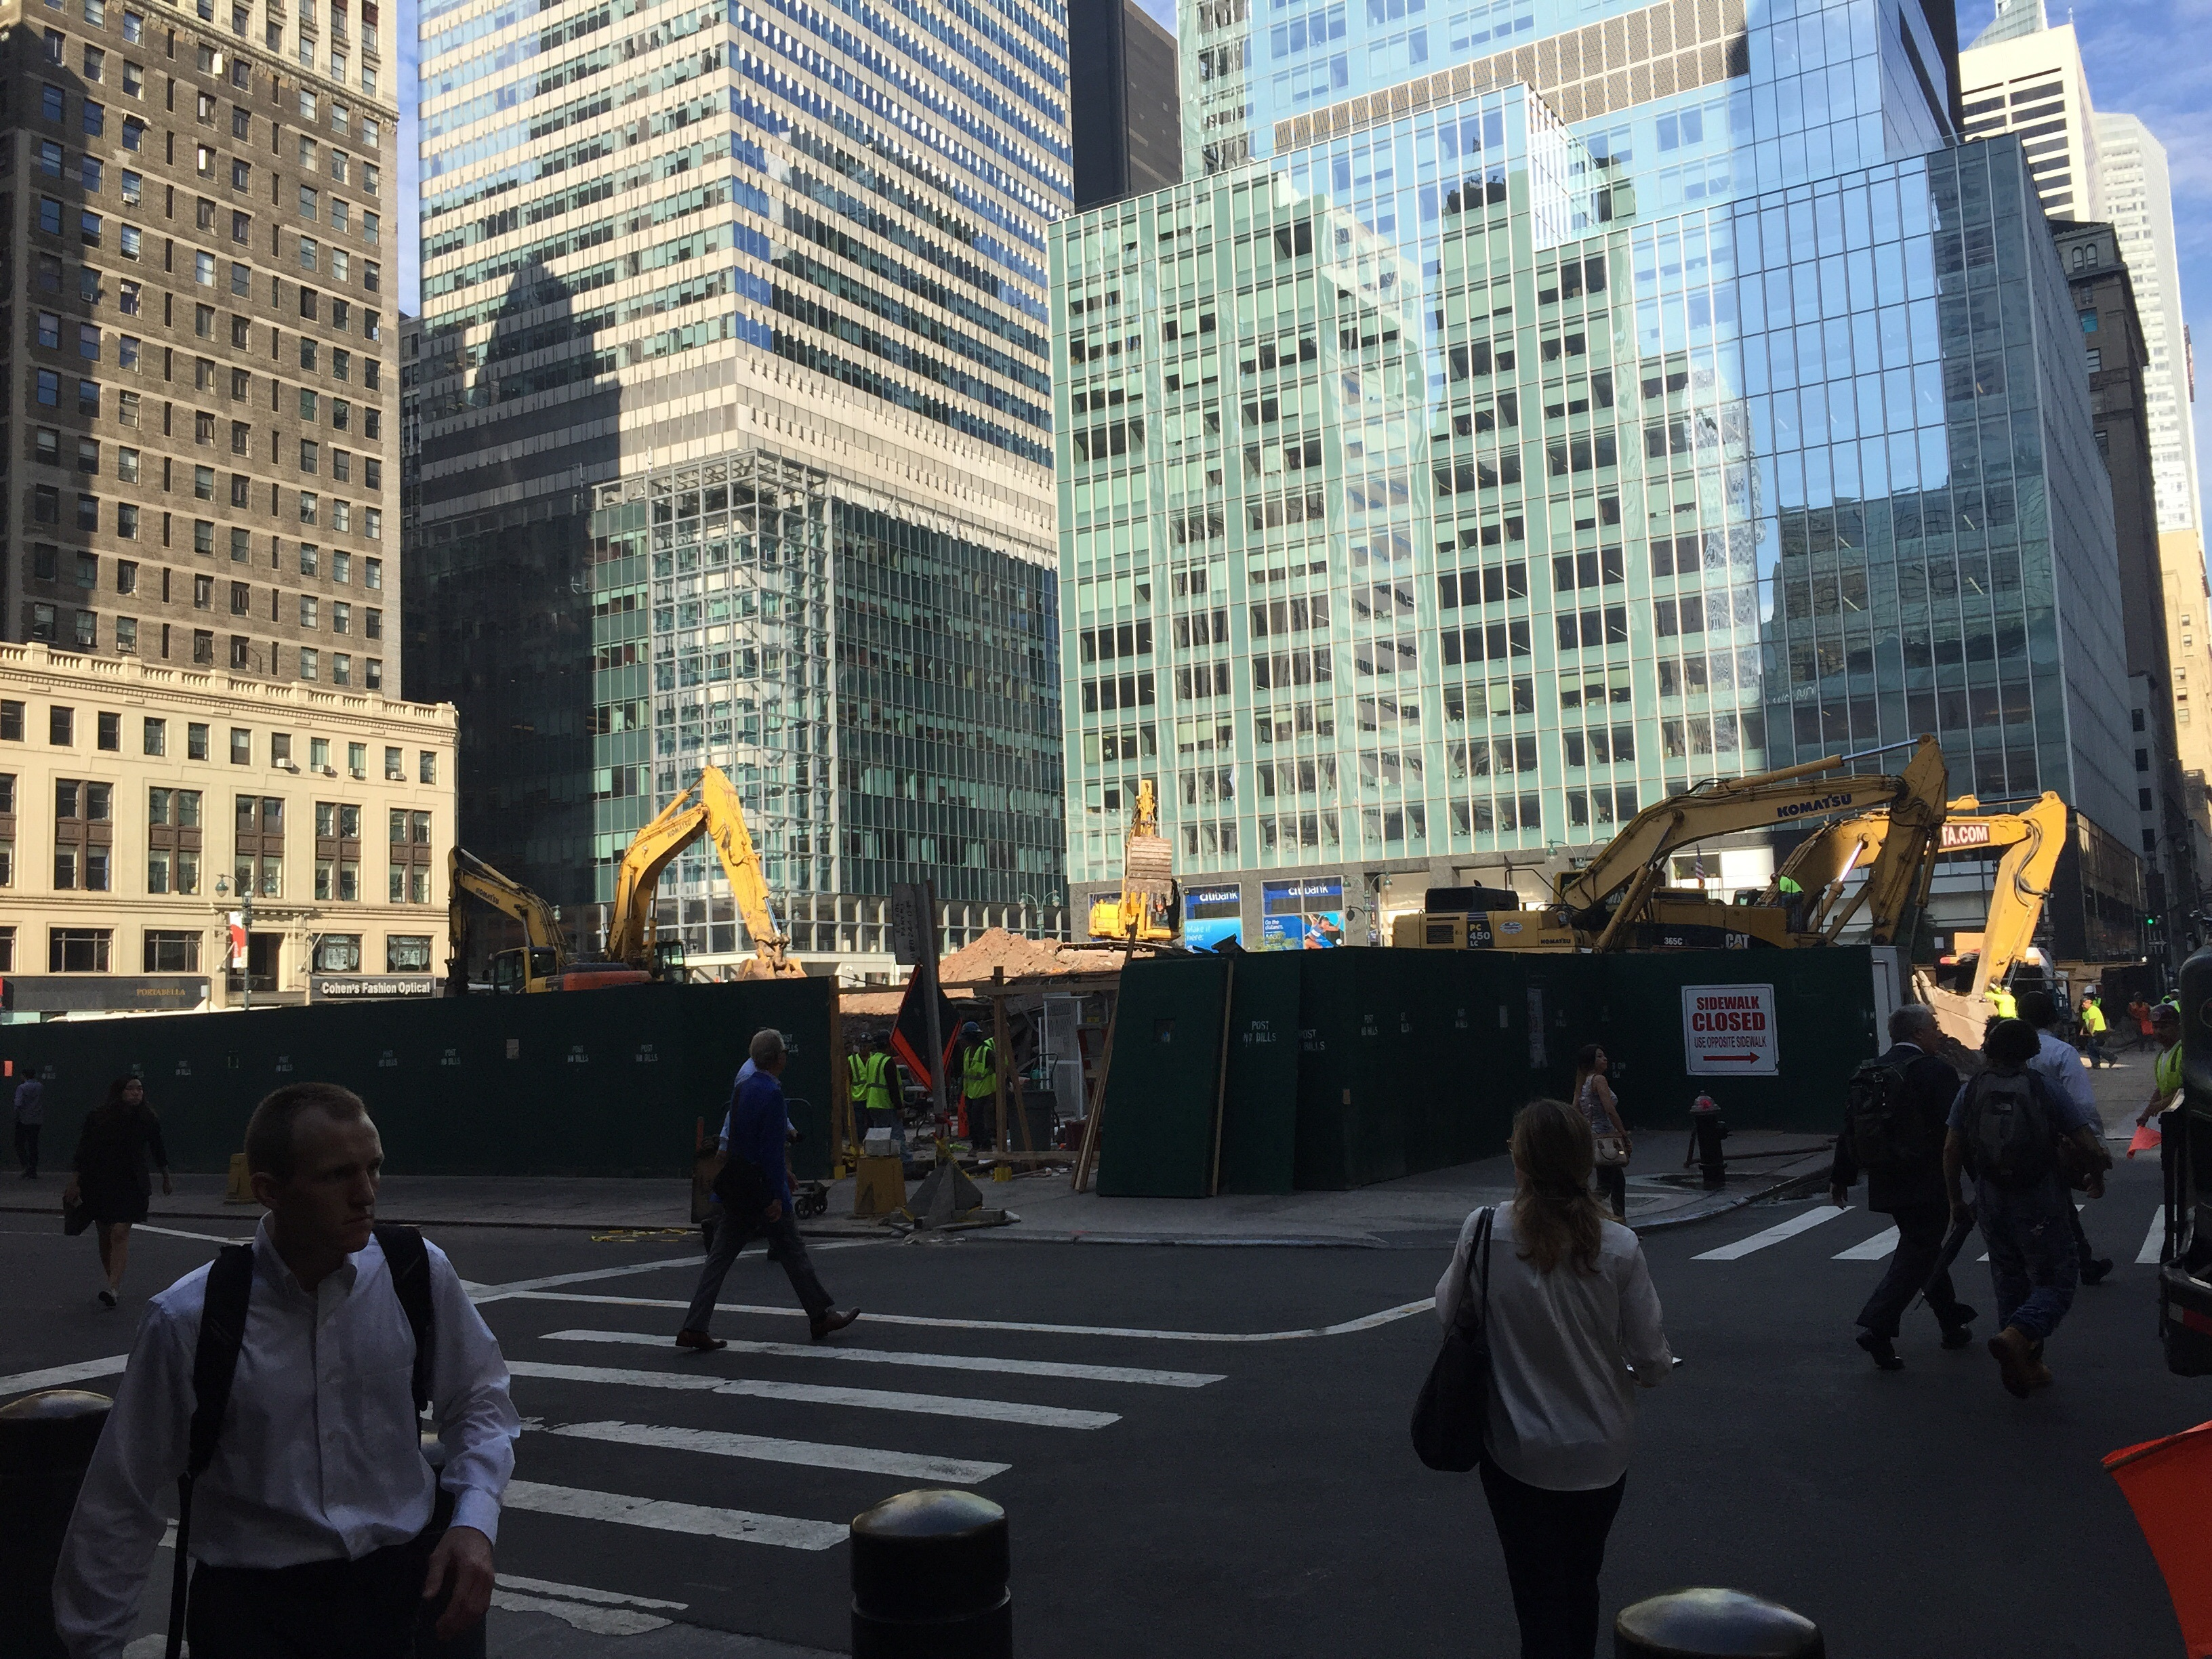 One Vanderbilt site, August 16, 2016. Photo by YIMBY Forums user robertwalpole